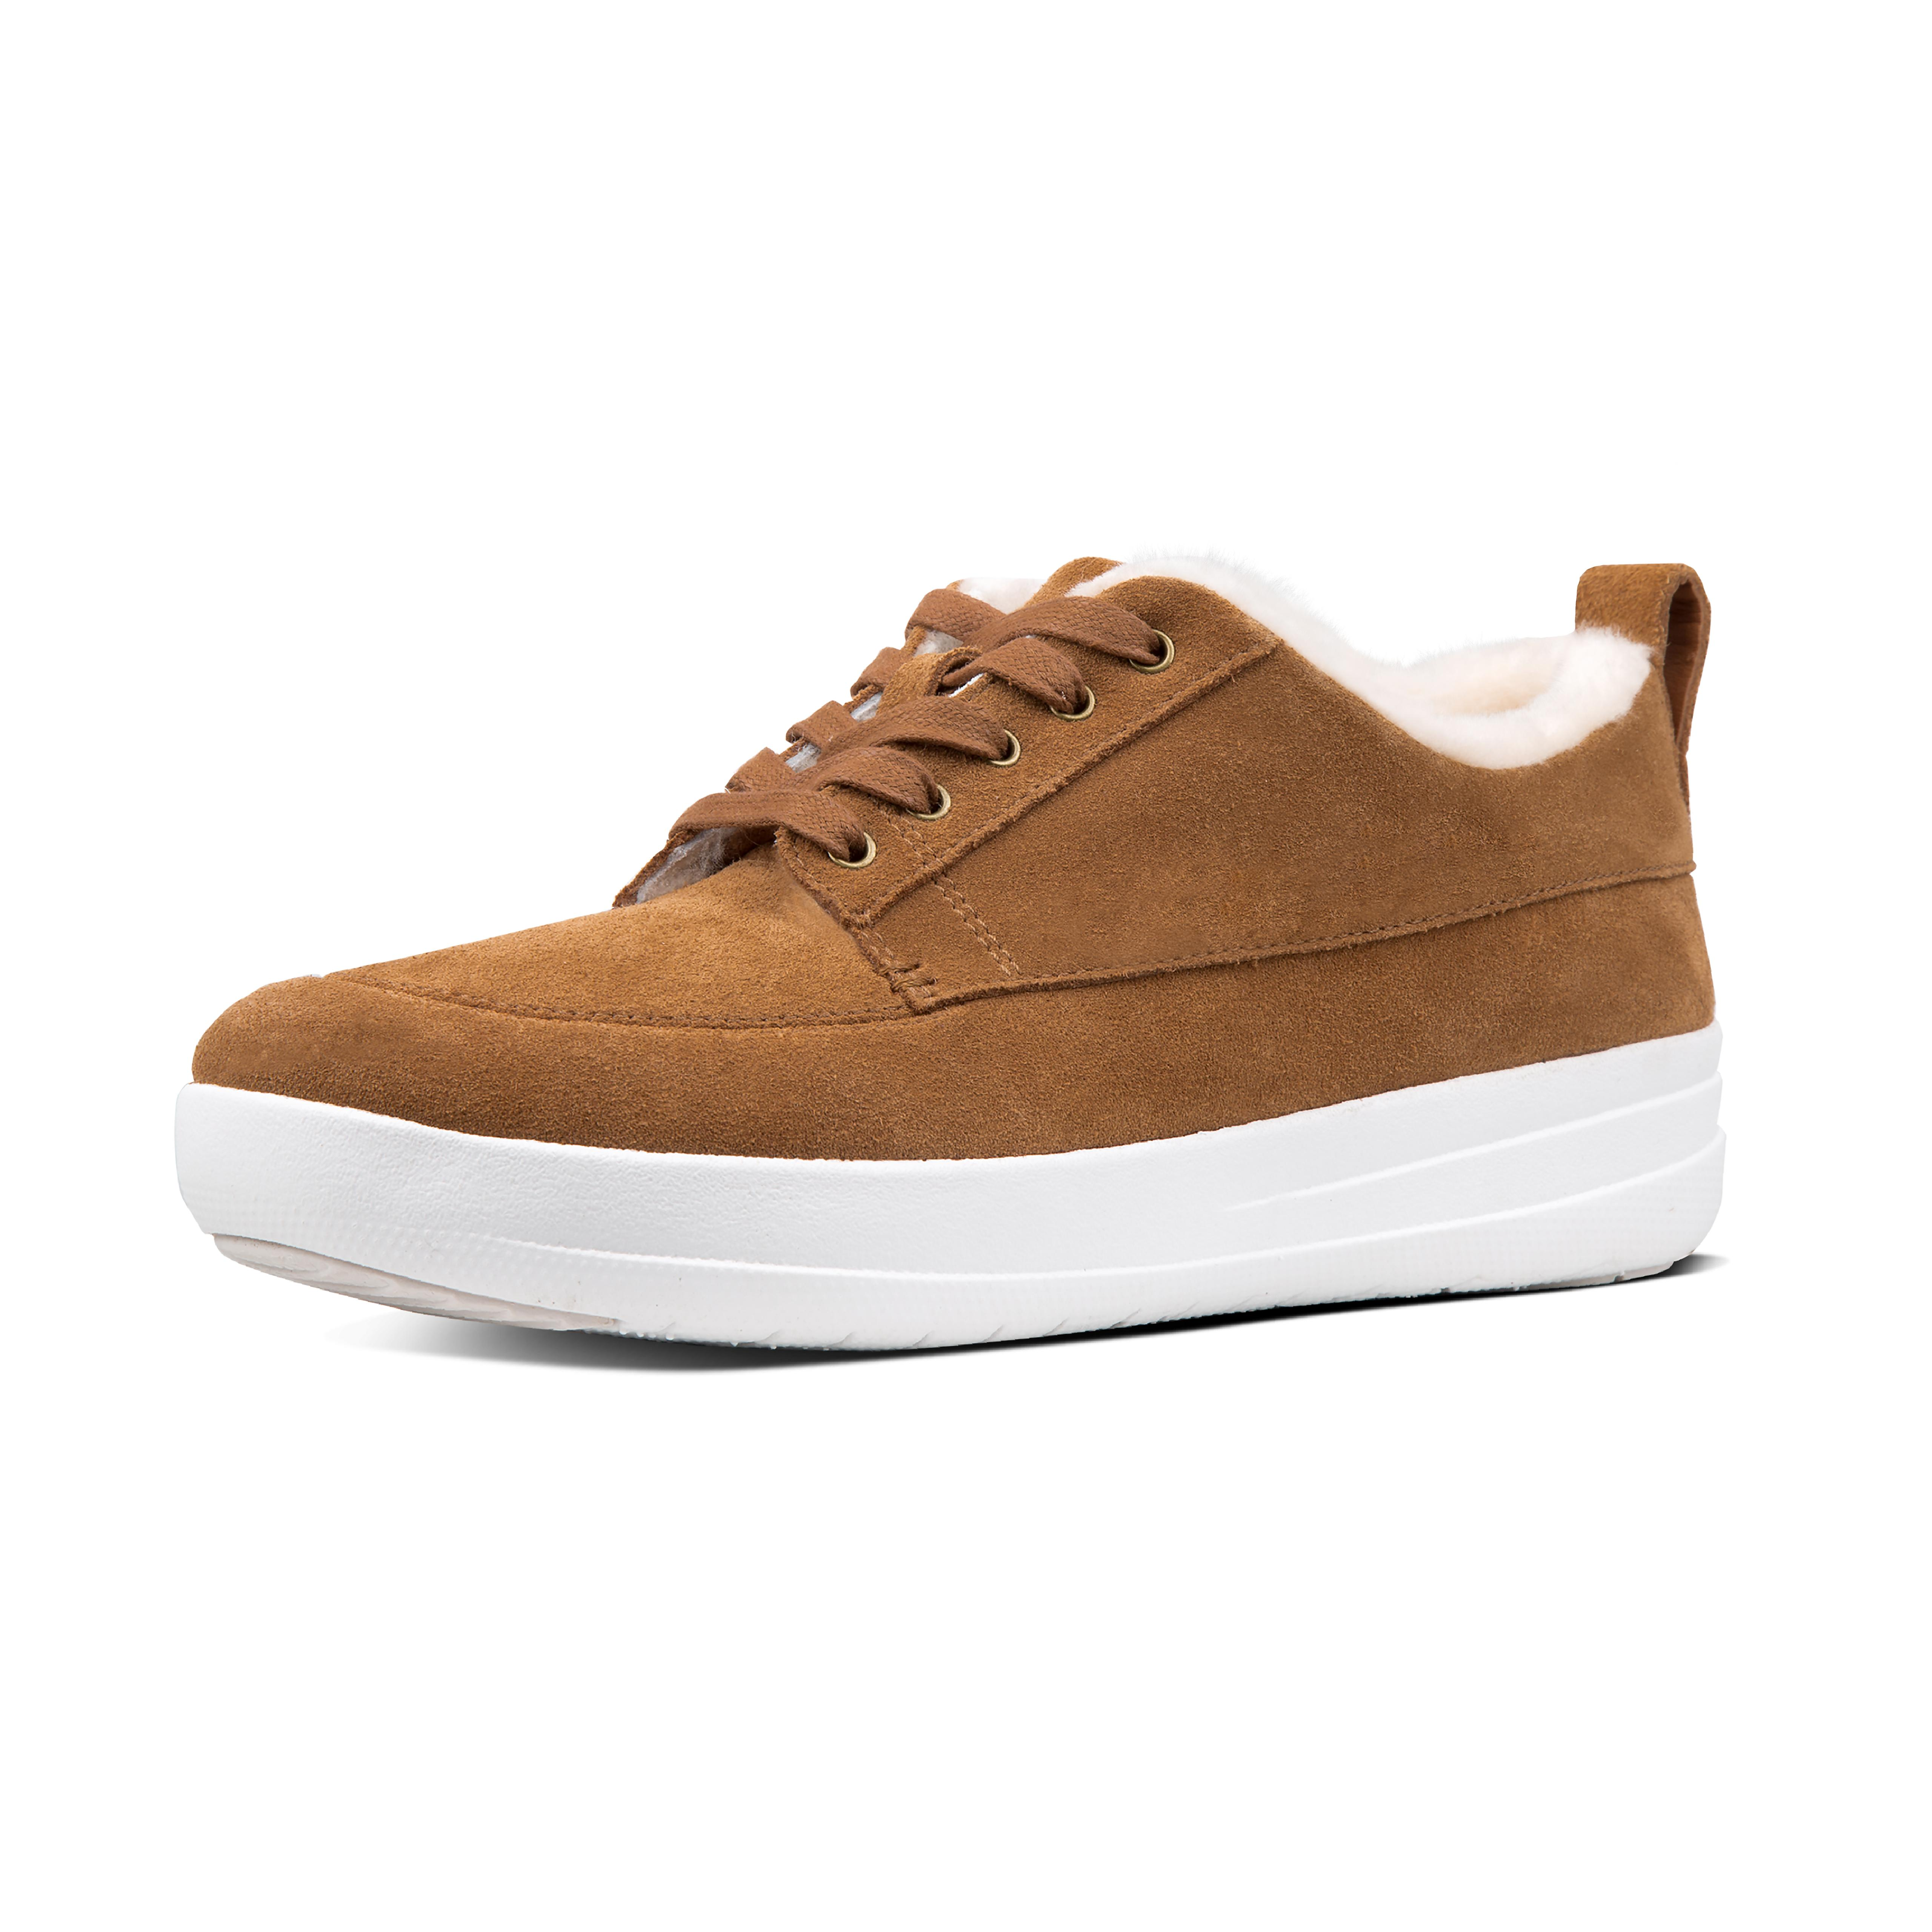 Live in sneakers? Then make sure you're equipped with a pair of these for when it gets chillier. In soft suede, with a fluffy toe-toasting shearling lining, and featuring our ultra-light, all-day cushioning Anatomicush midsole tech, they're guaranteed to keep feet snug (and effortlessly stylish).